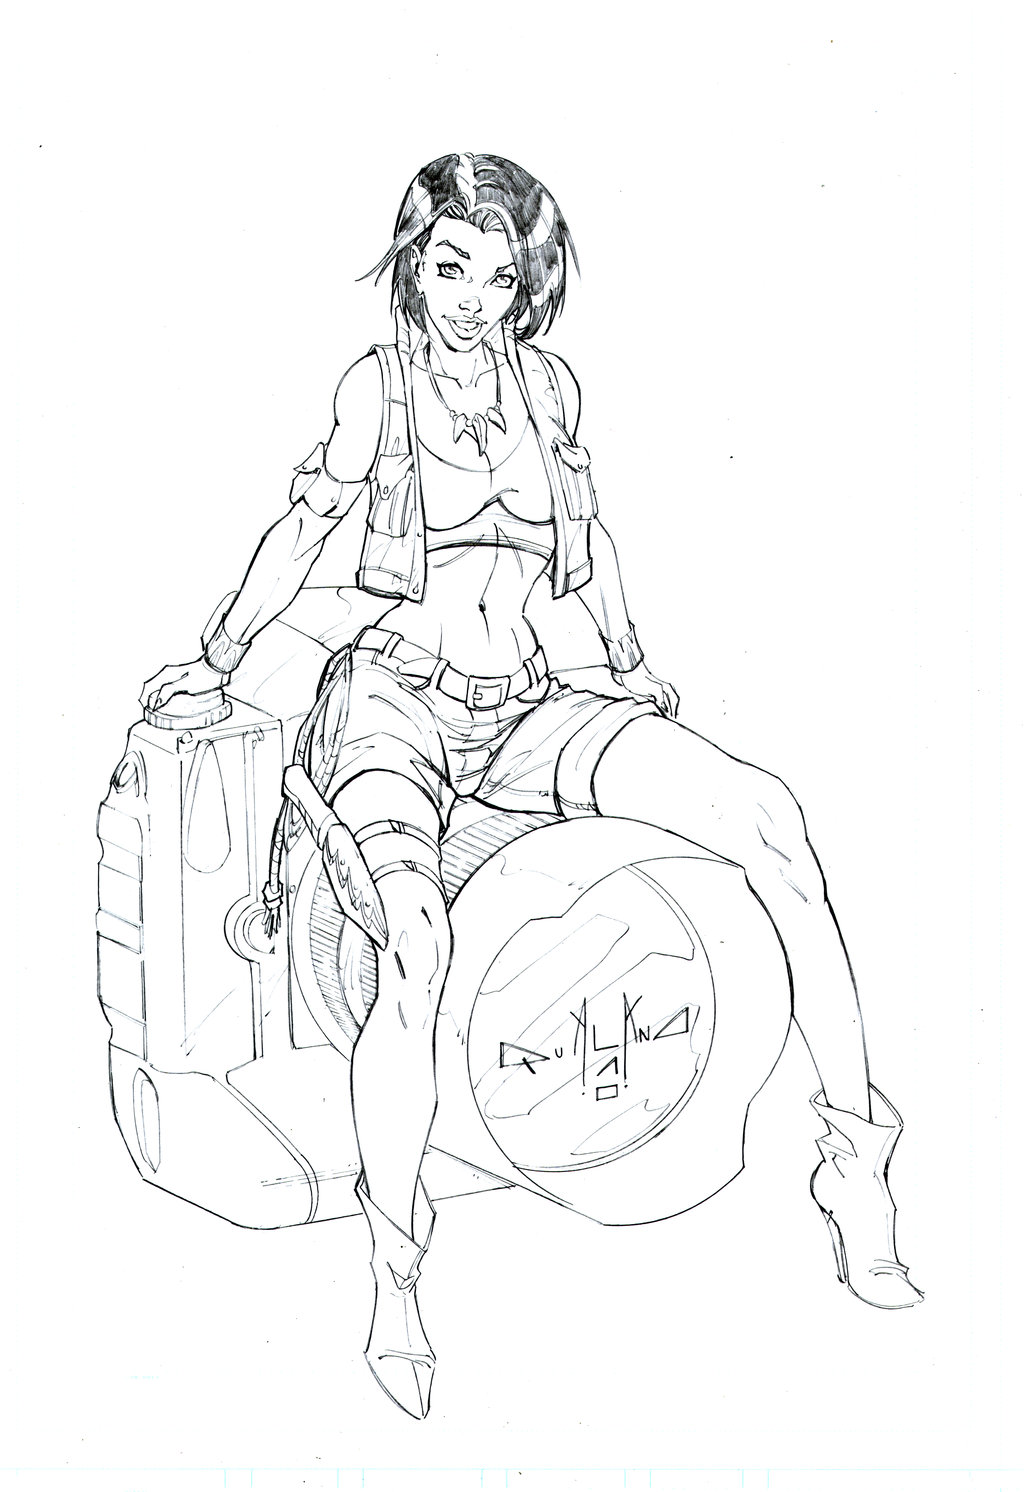 Drawn pin up  line art Comix on for by pin